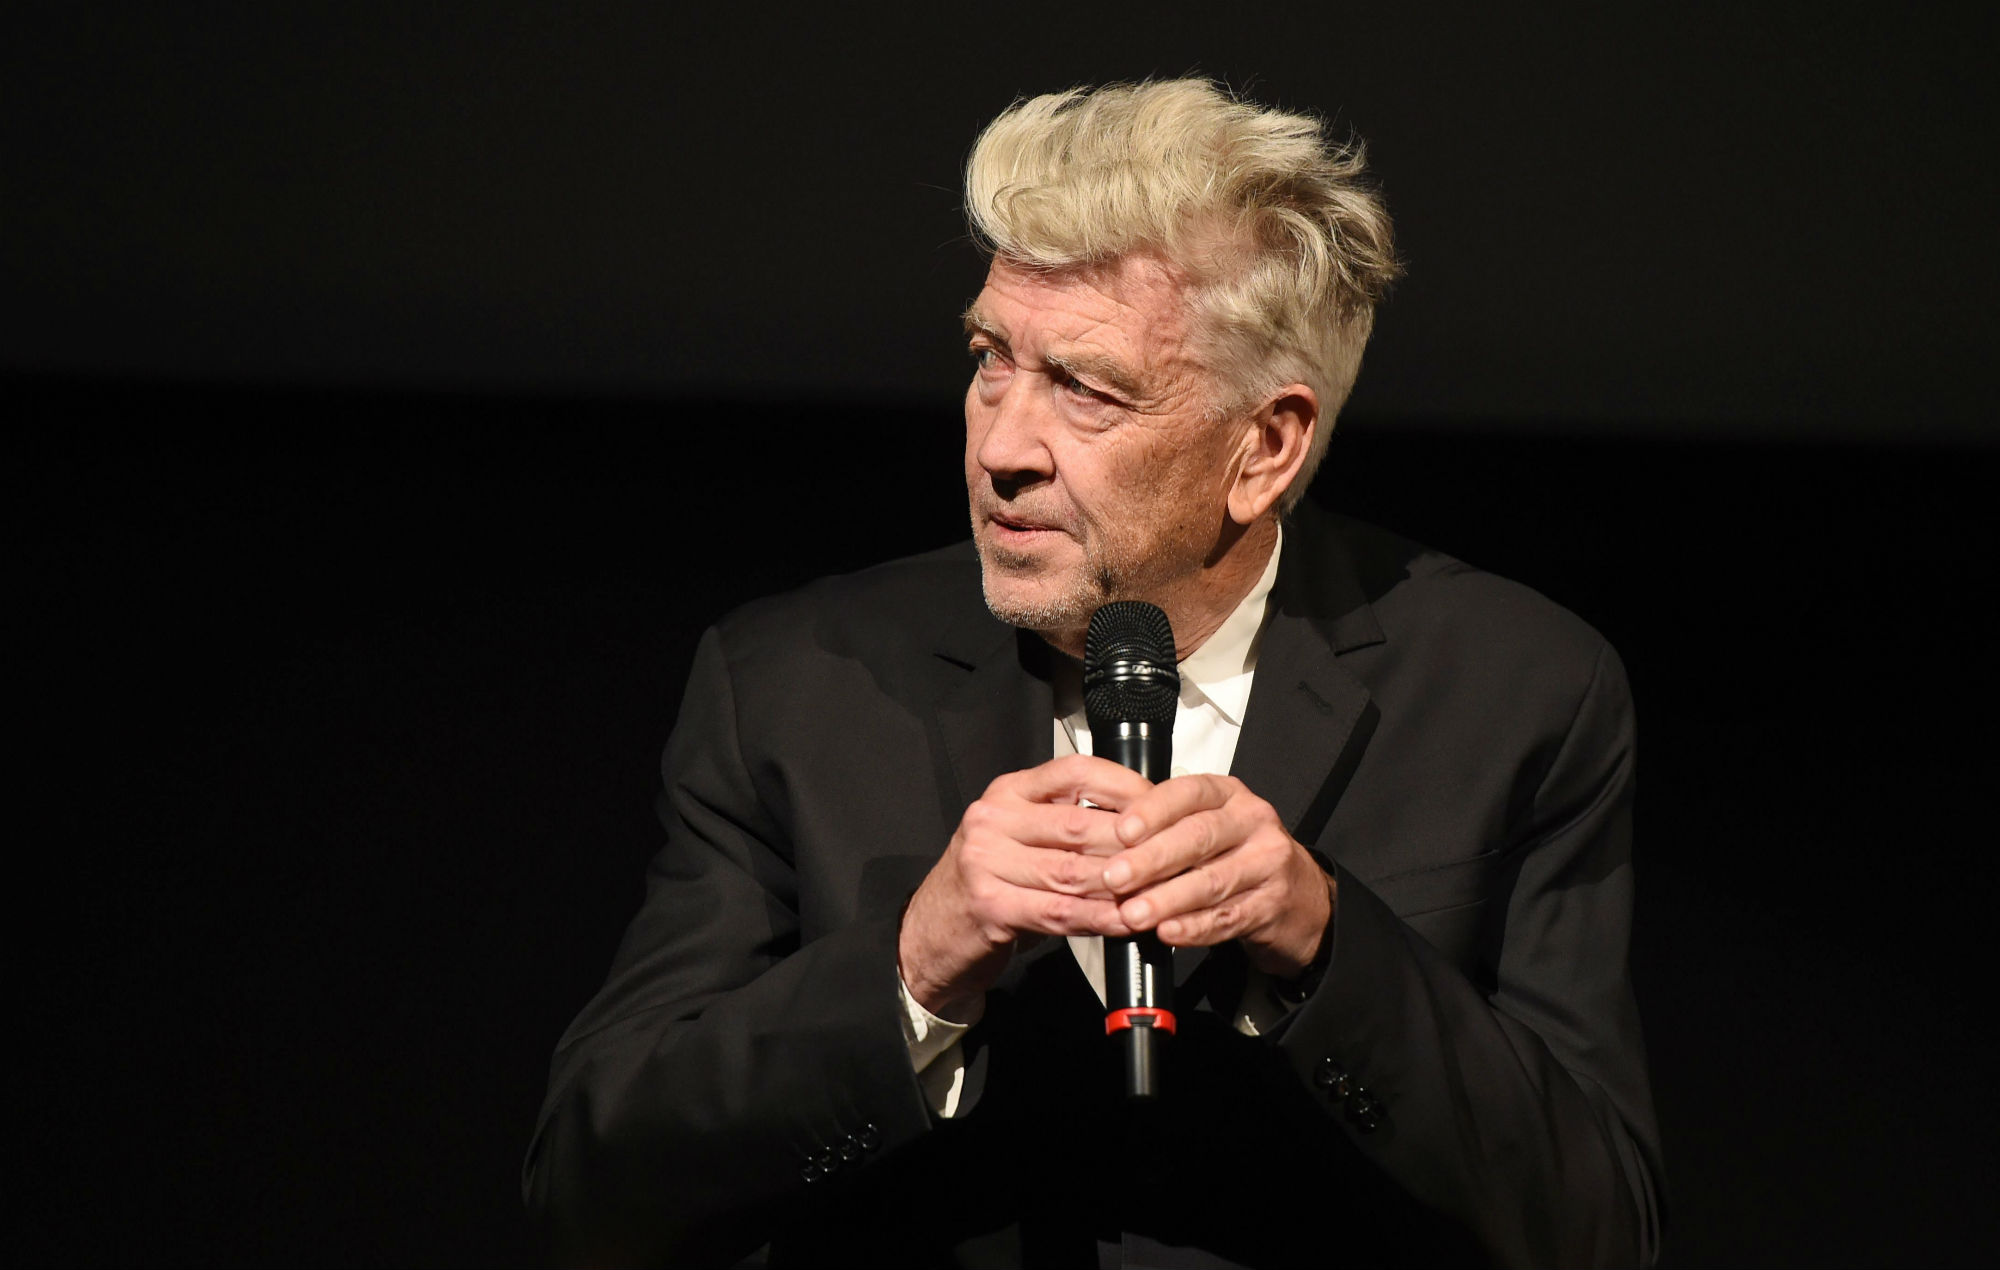 David Lynch is releasing long-awaited short film 'Fire' on YouTube